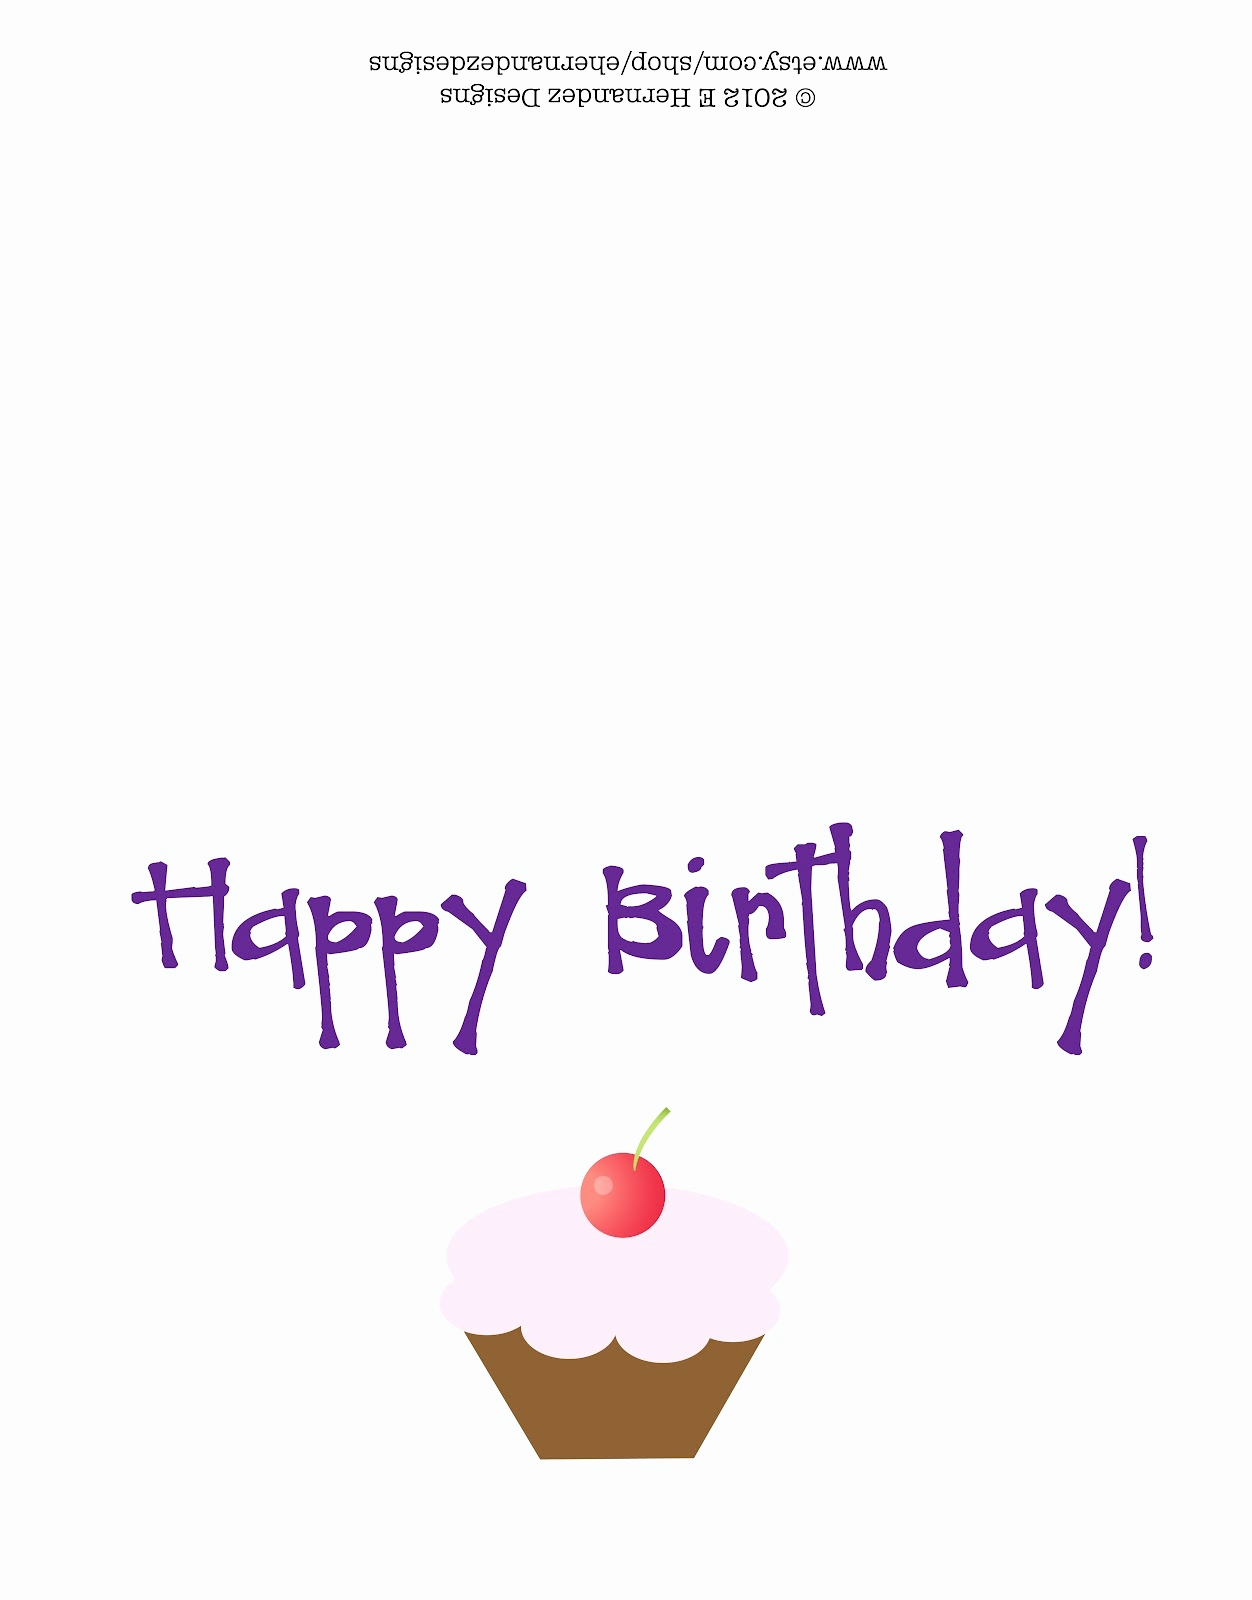 Free Printable Birthday Cards For Him Luxury Printable Birthday - Free Printable Birthday Cards For Him